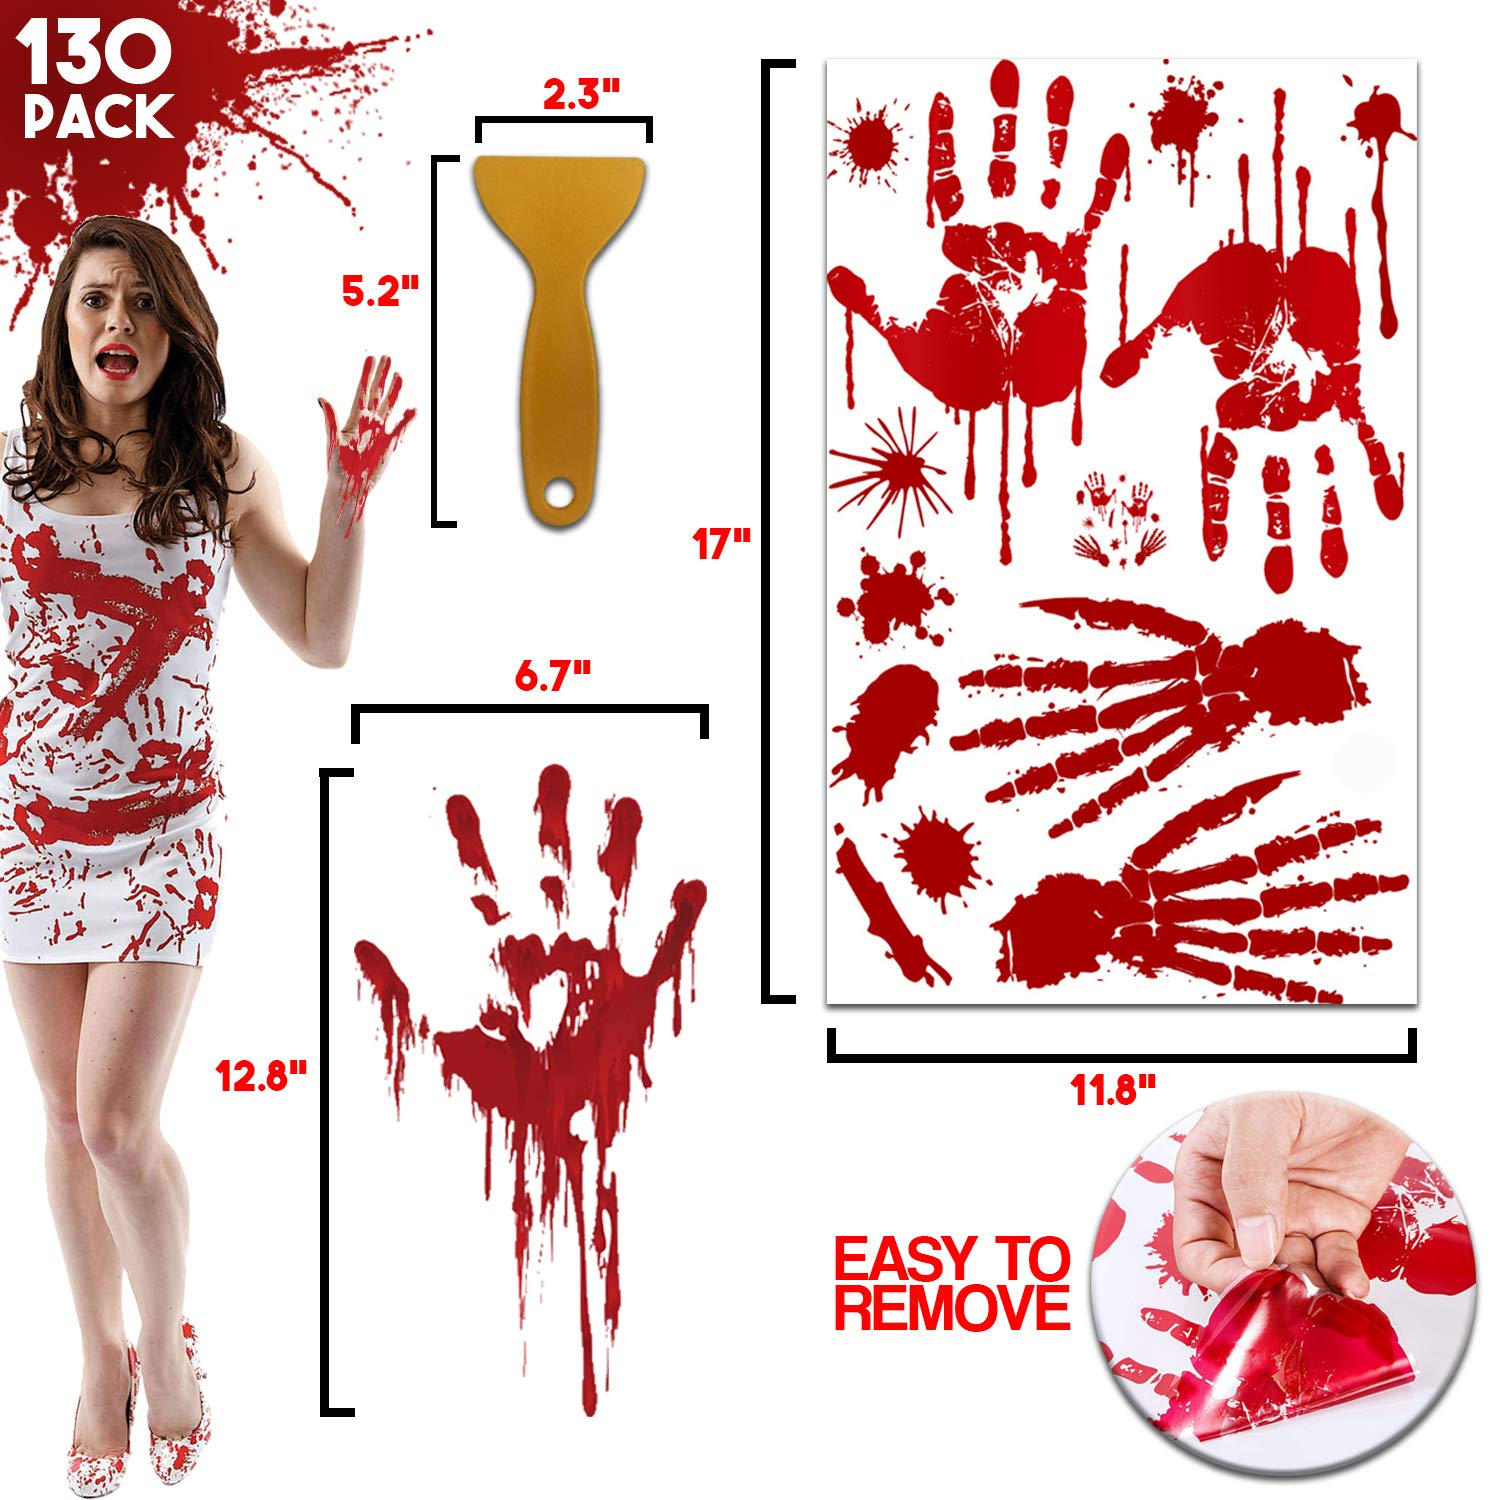 Jrodcas Halloween Decorations 130 pcs Bloody Handprint Footprint Window Decals, Wall Stickers decor Party Decorations each set INCLUDES 10 sheets 12x17 inches horror zombie party Easily Remove Wall Decals After Use by Jrodcas